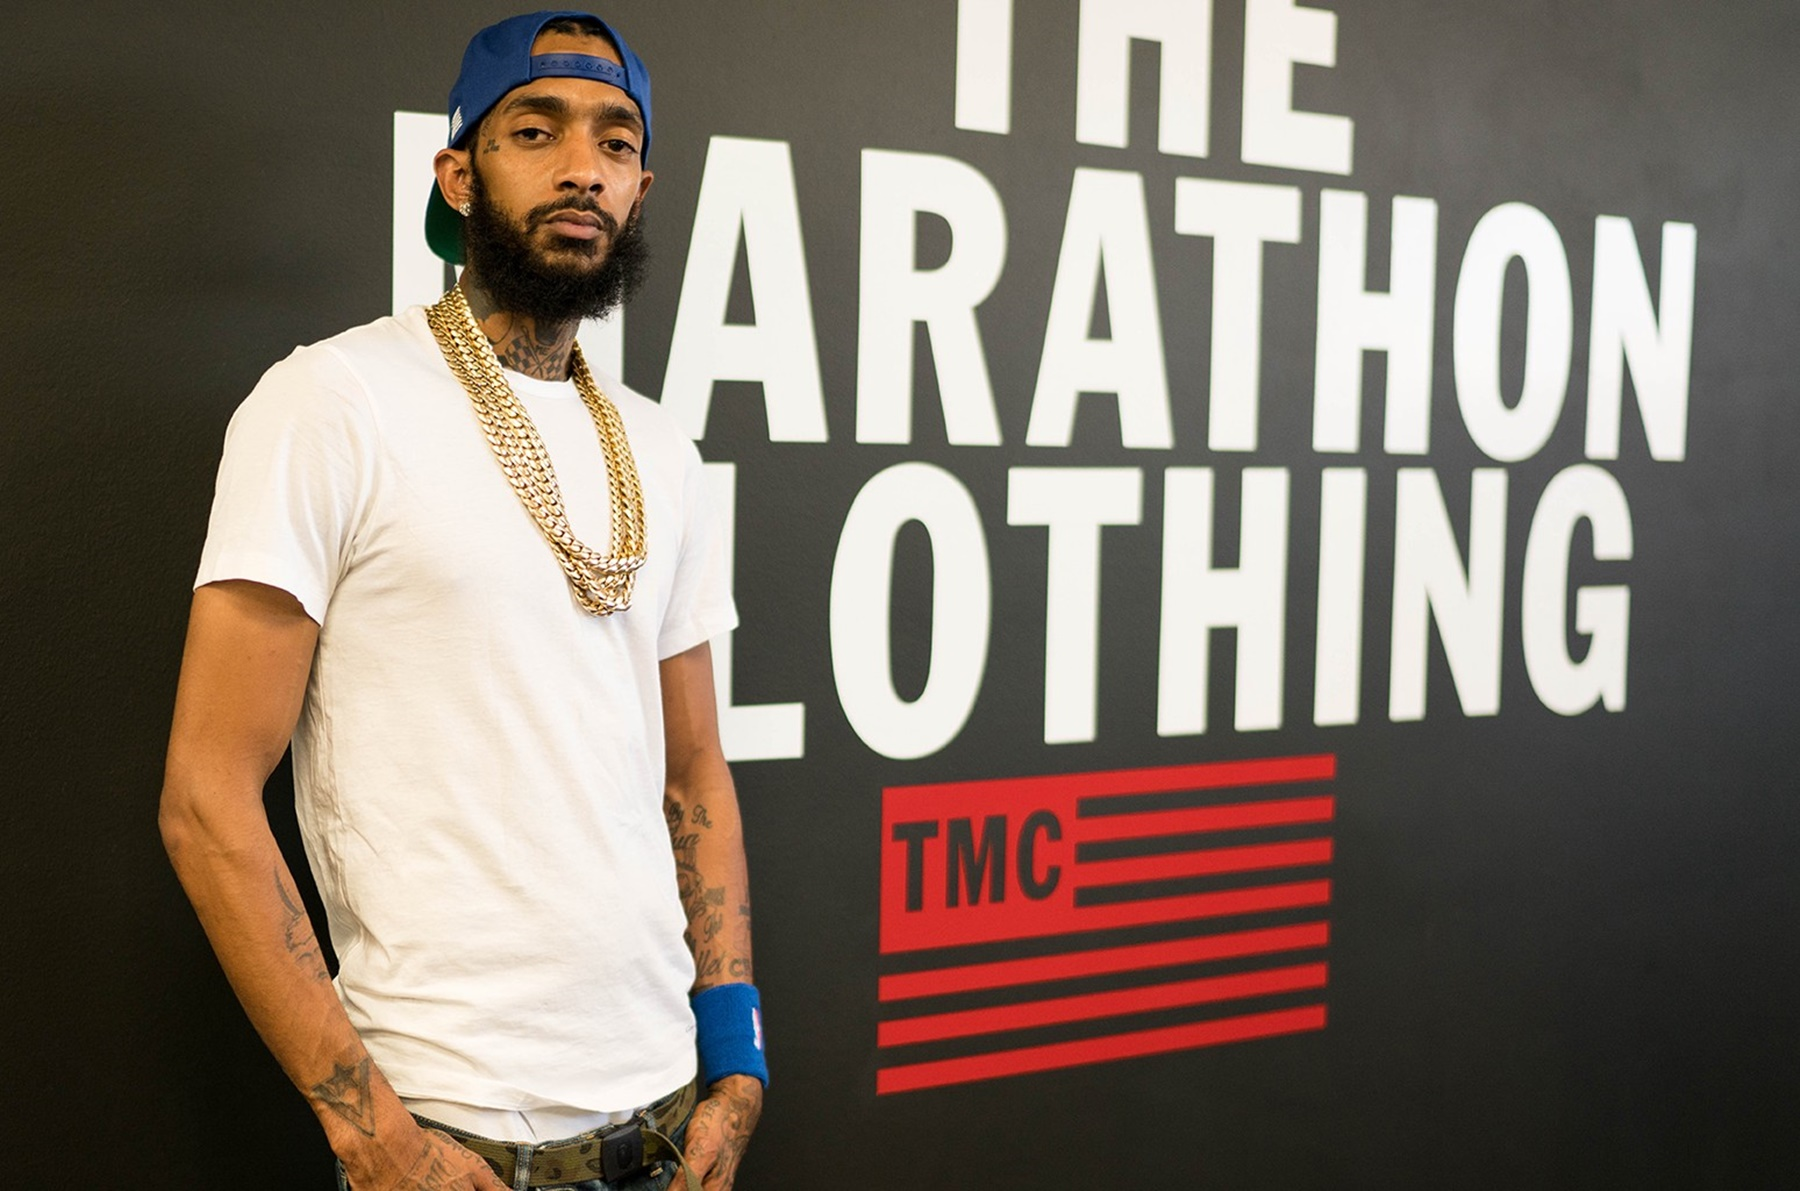 the-game-shares-the-list-of-books-that-nipsey-hussle-read-and-helped-shape-him-into-a-powerful-activist-and-community-leader